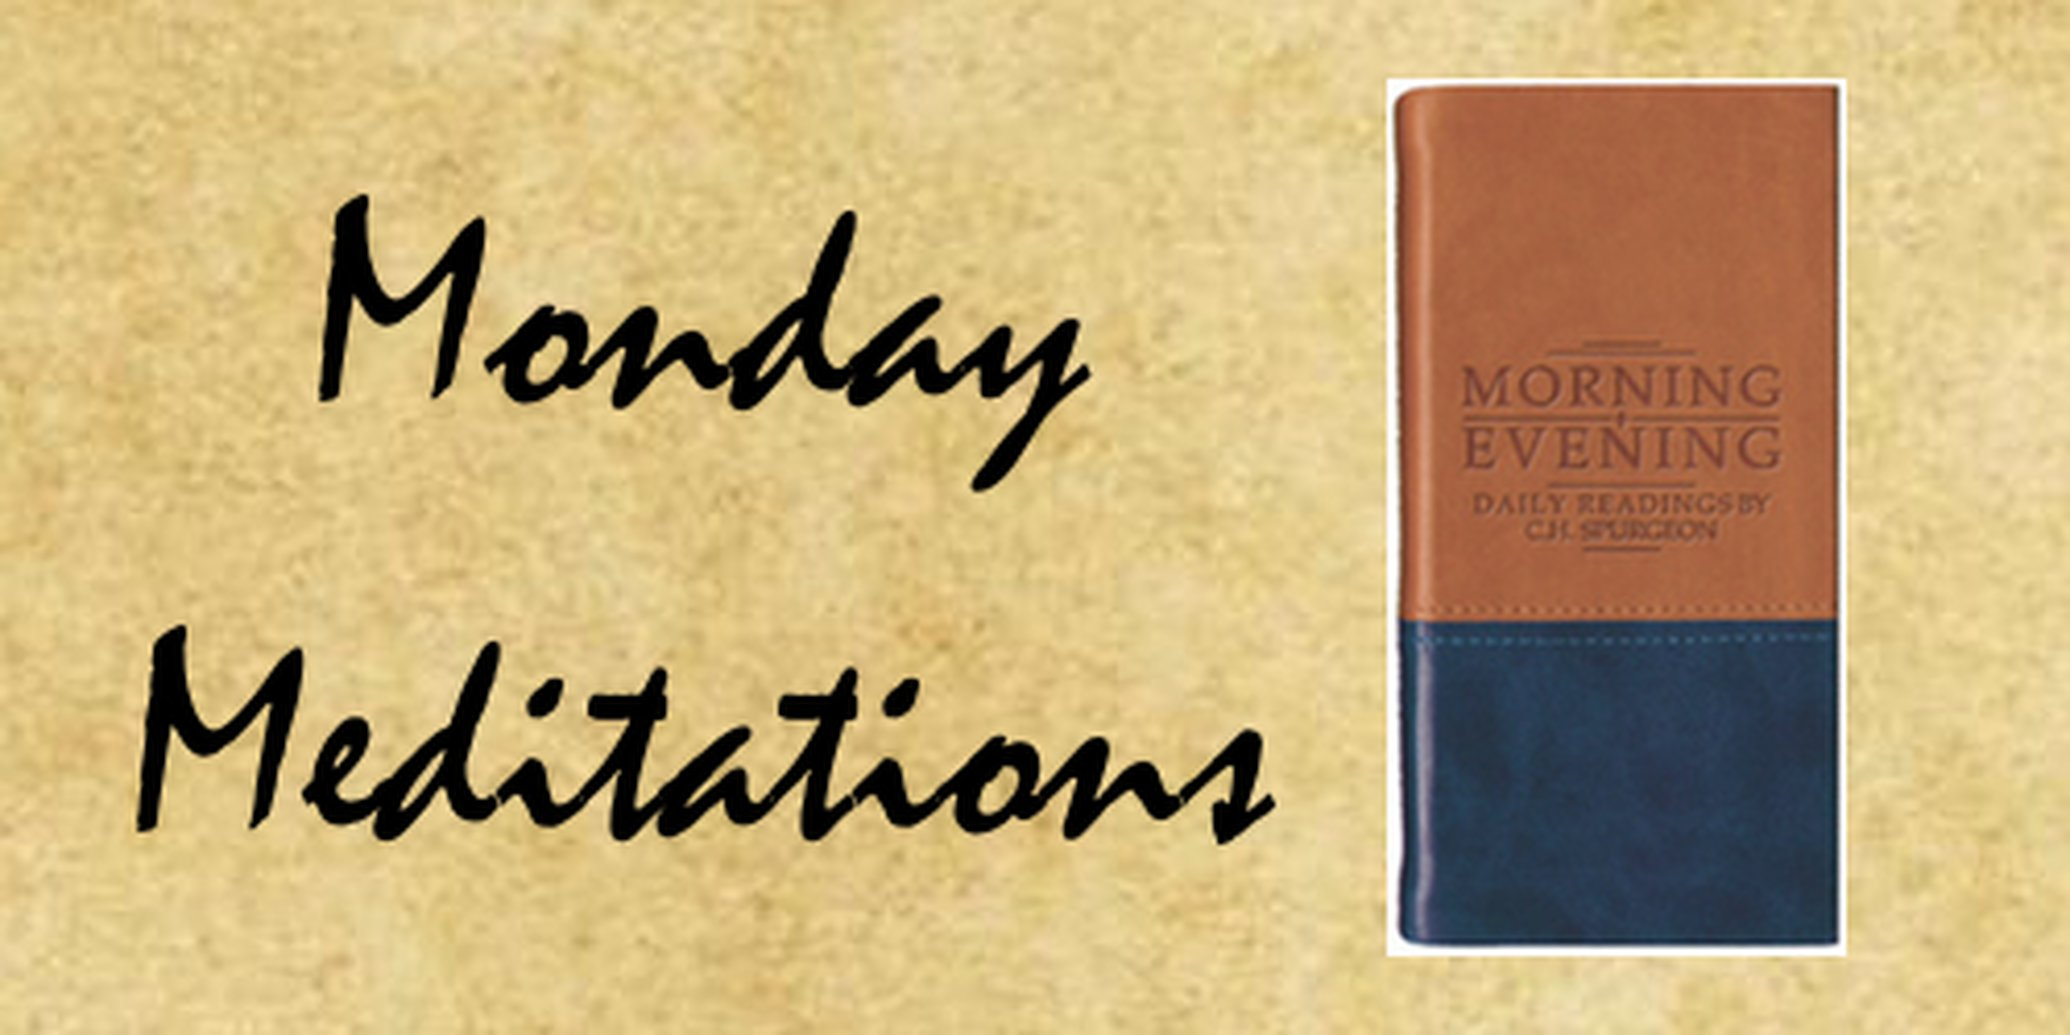 Monday Meditations: I sought him, but I found him not - Spurgeon